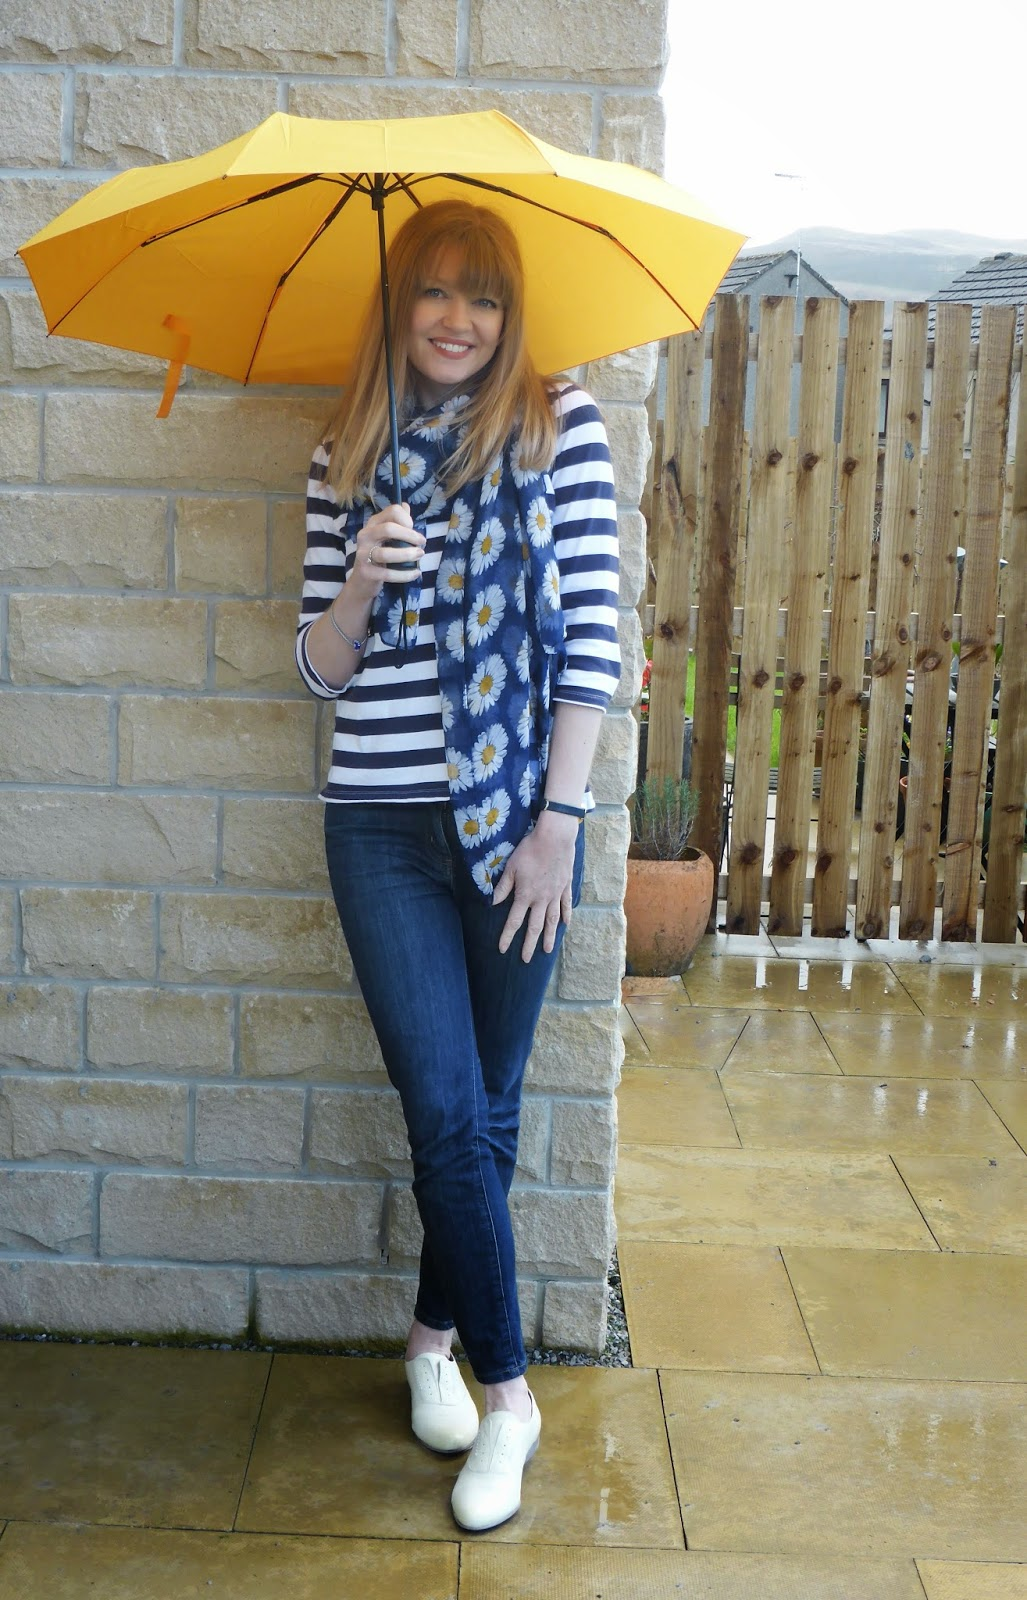 Over 40 blogger What Lizzy Loves wearing Jack Wills breton, Clarks yellow brogues, a floral scarf and Boden jeans with a yellow umbrella